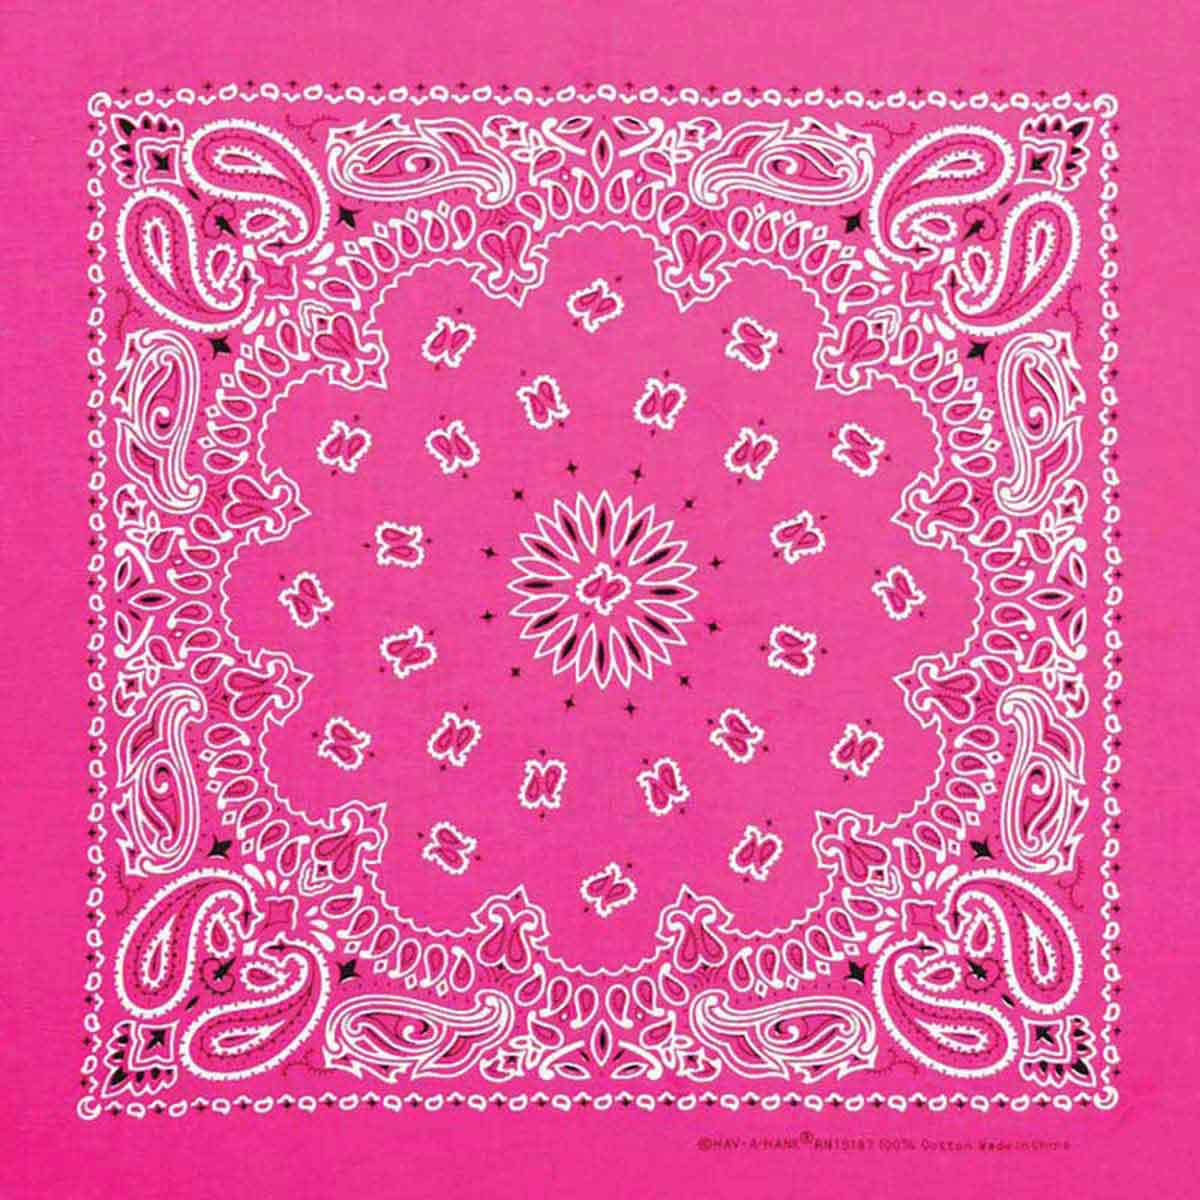 Neon Hot Pink Paisley Bandanna for Dog Grooming available at Ryan's Pet Supplies